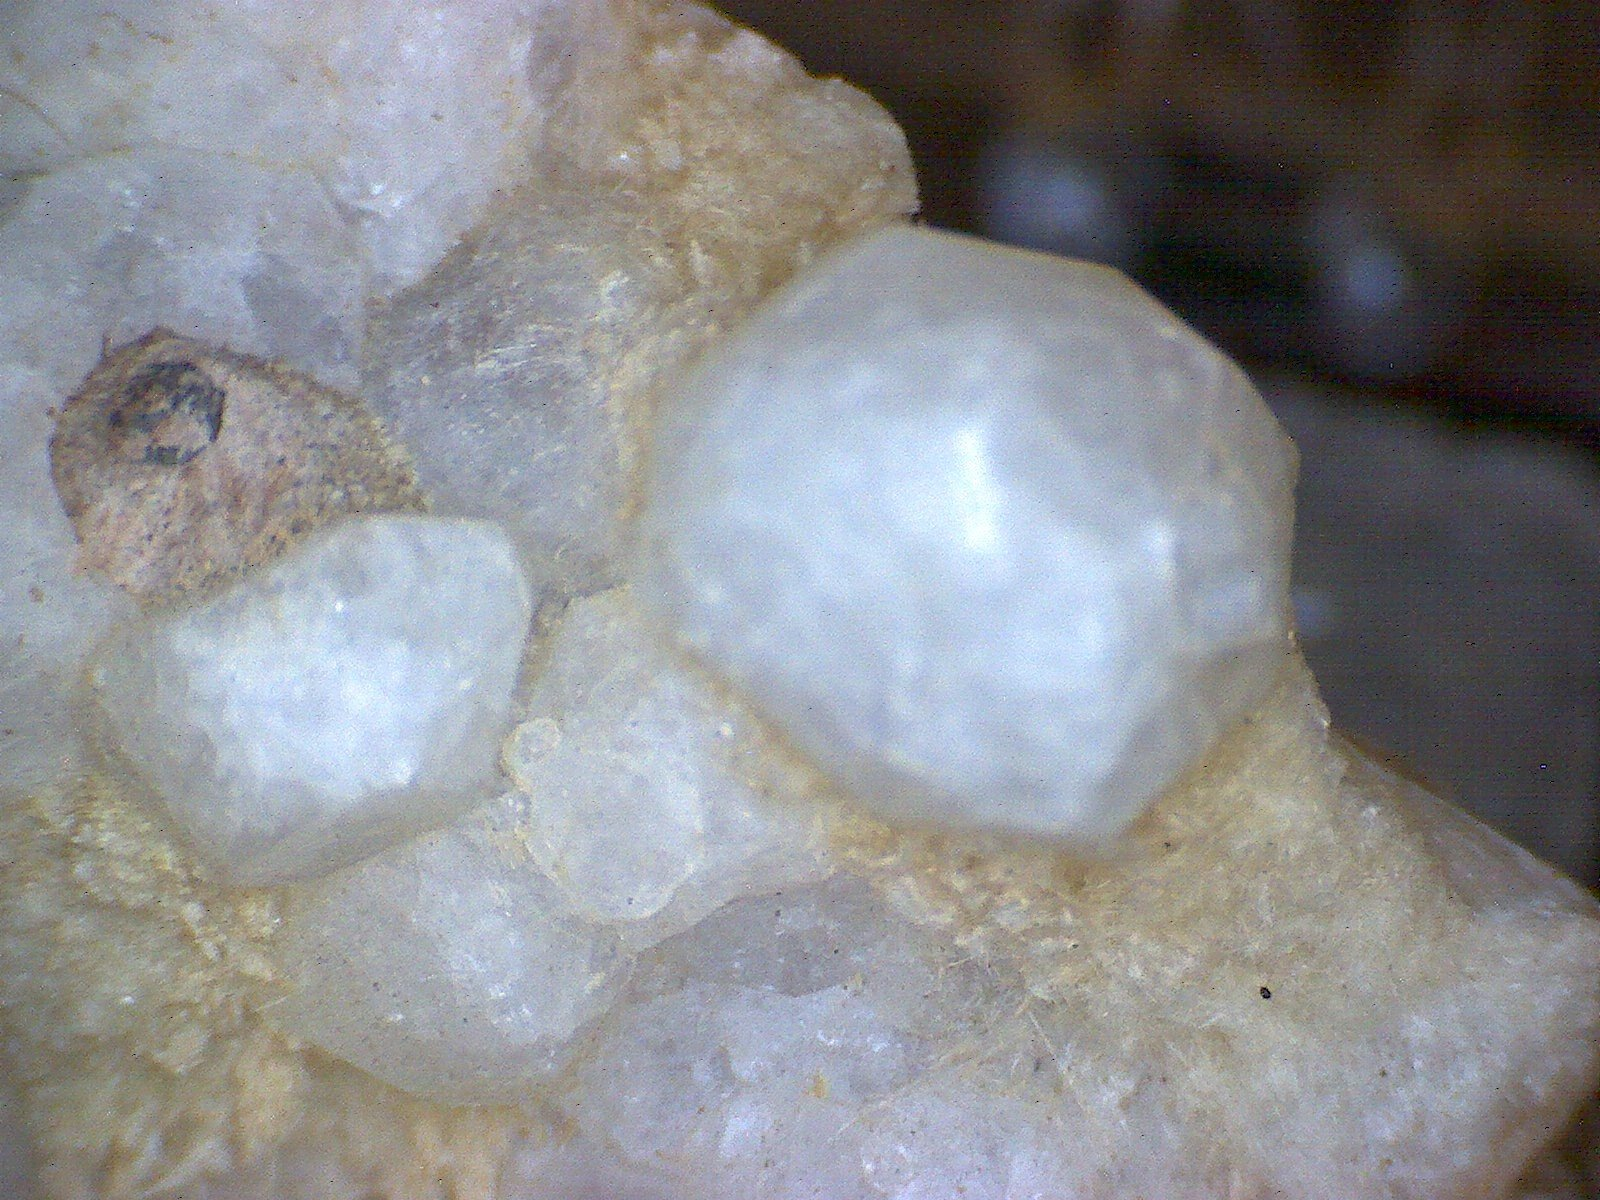 Analcime crystal